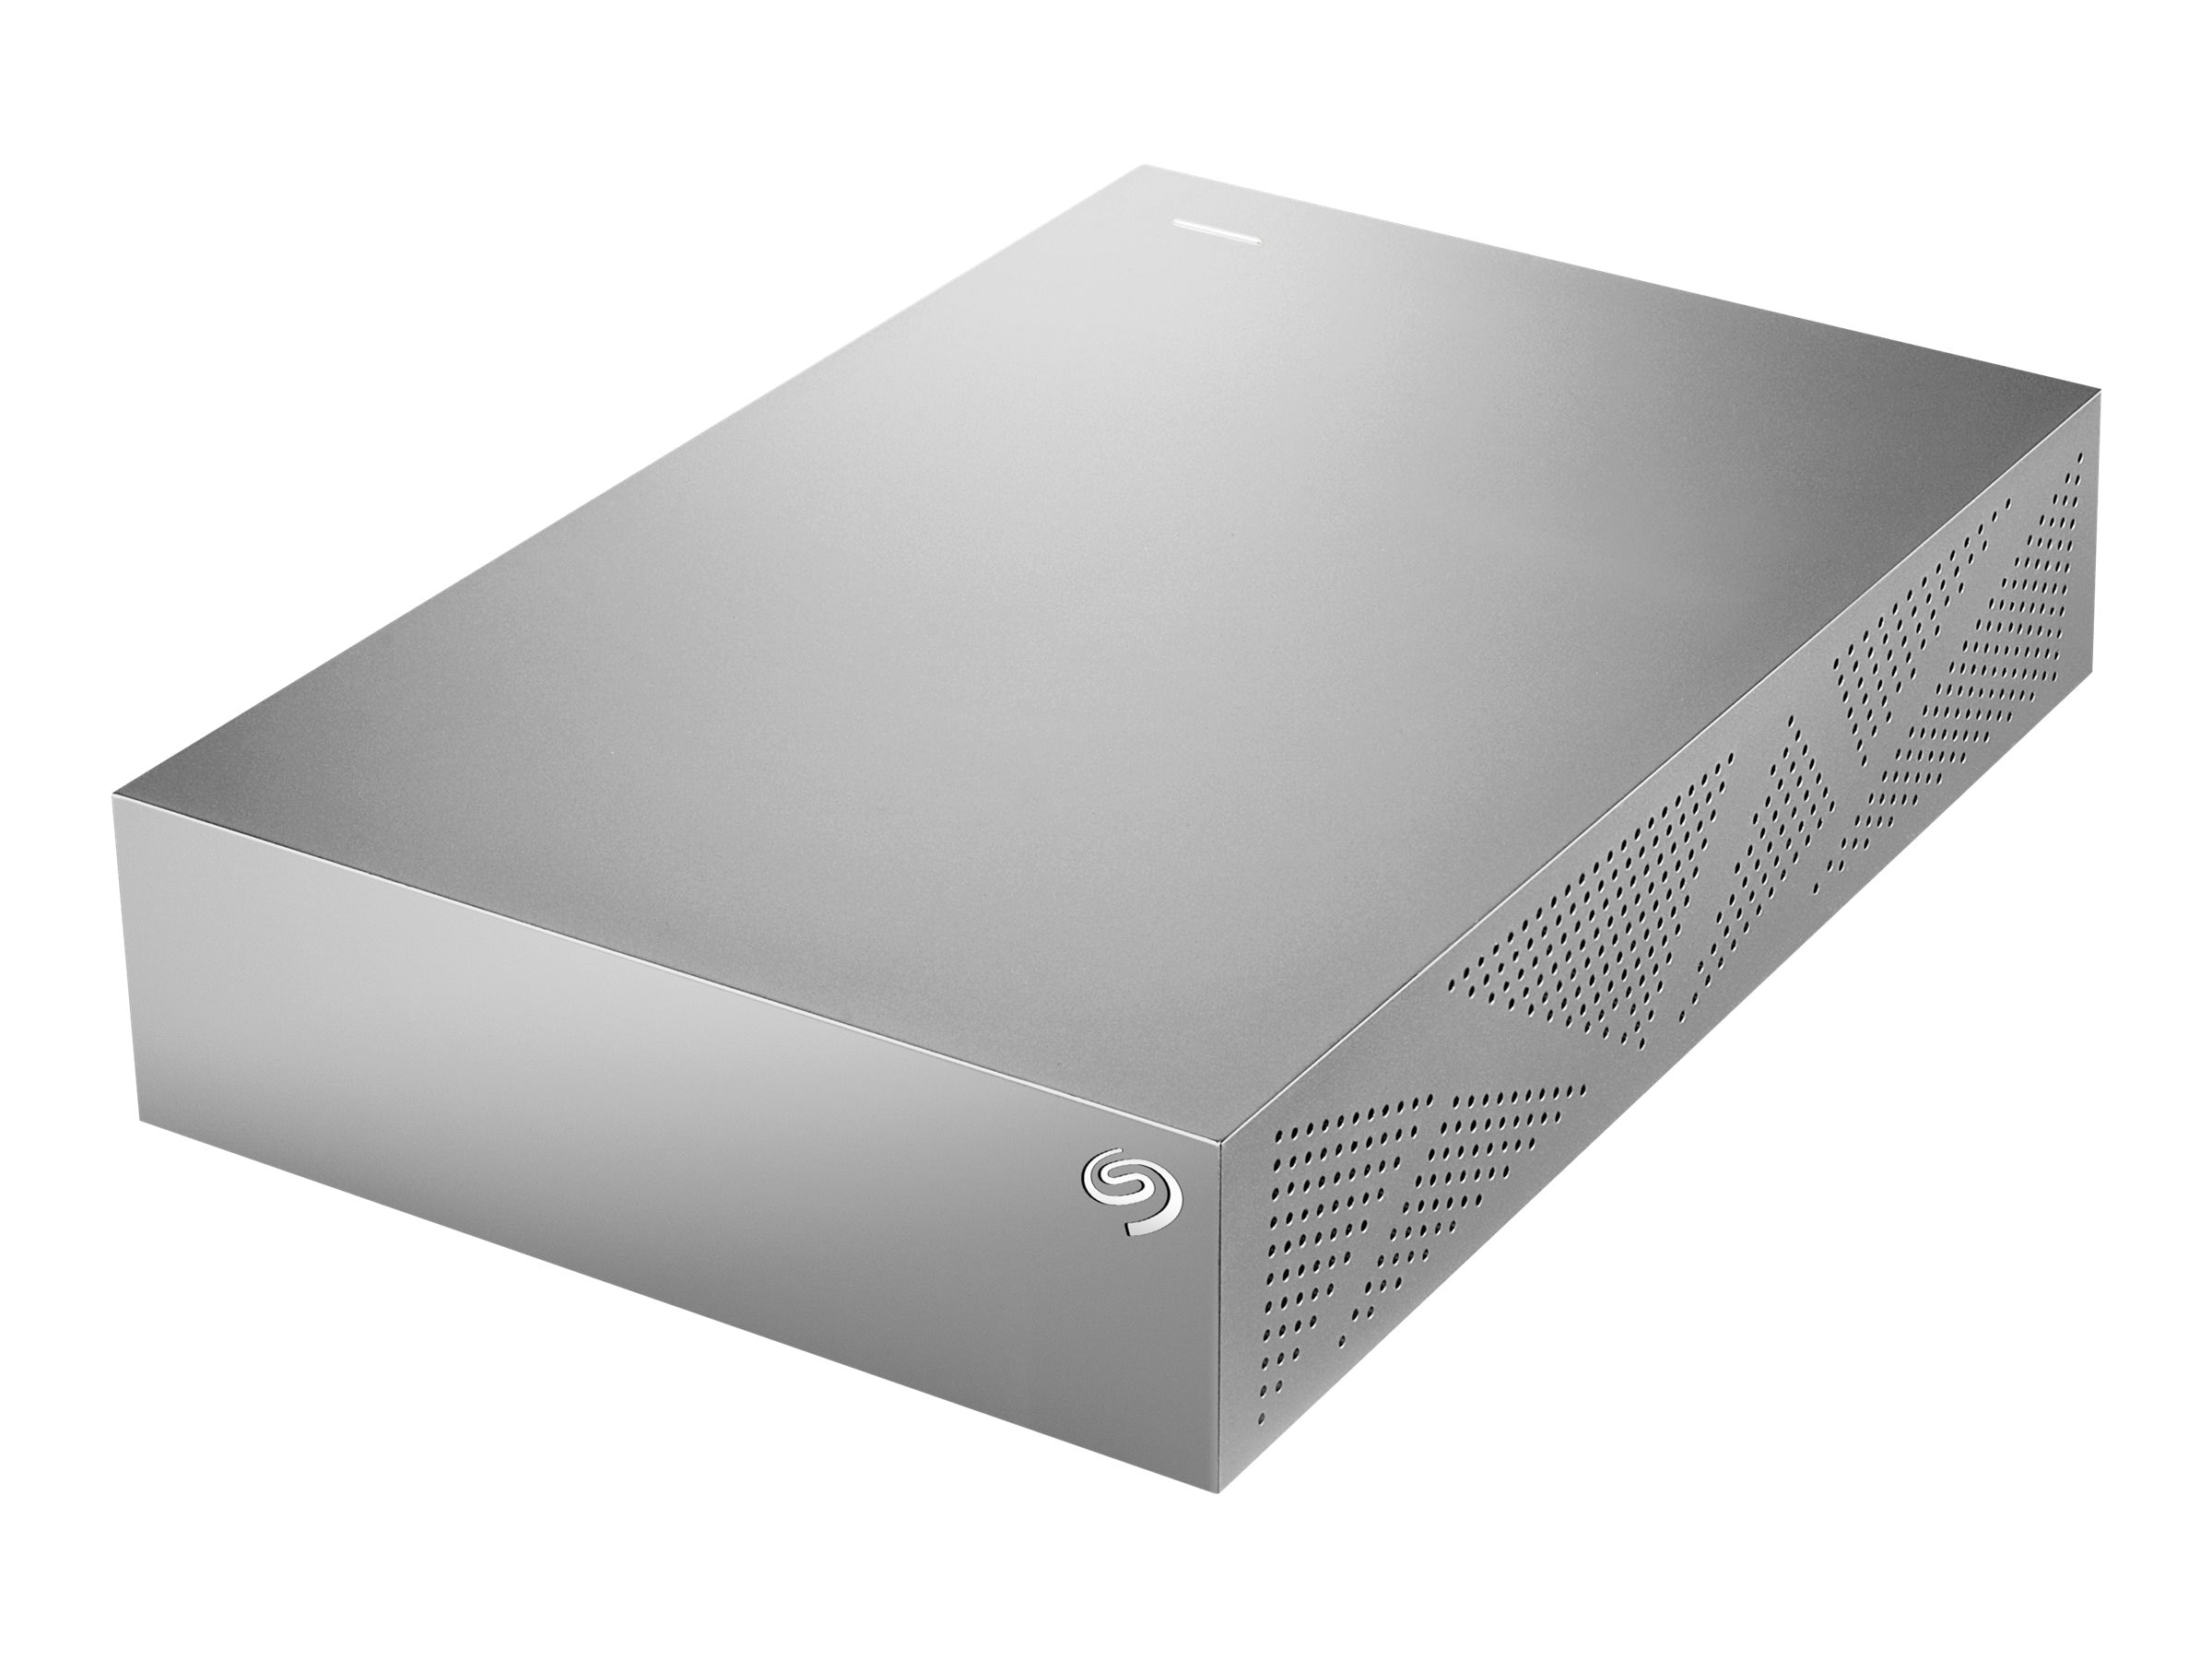 Seagate 3TB Backup Plus for Mac USB 3.0 2.5 External Hard Drive, STDU3000101